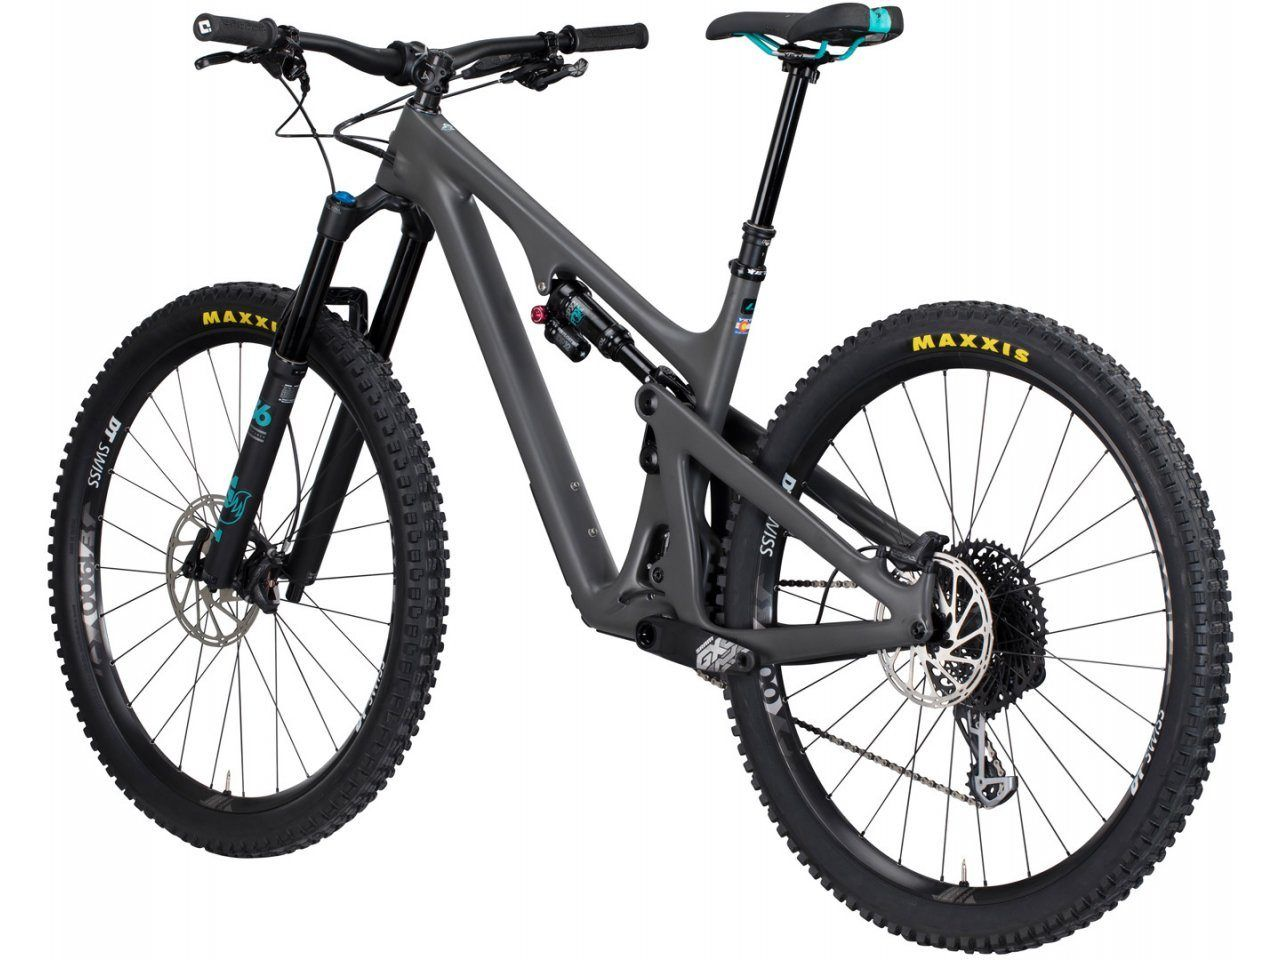 Yeti-Cycles-SB130-C-Series-Lunch-Ride-Carbon-29-Bike-2020-Model-anthracite-L-73957-307188-157...jpeg